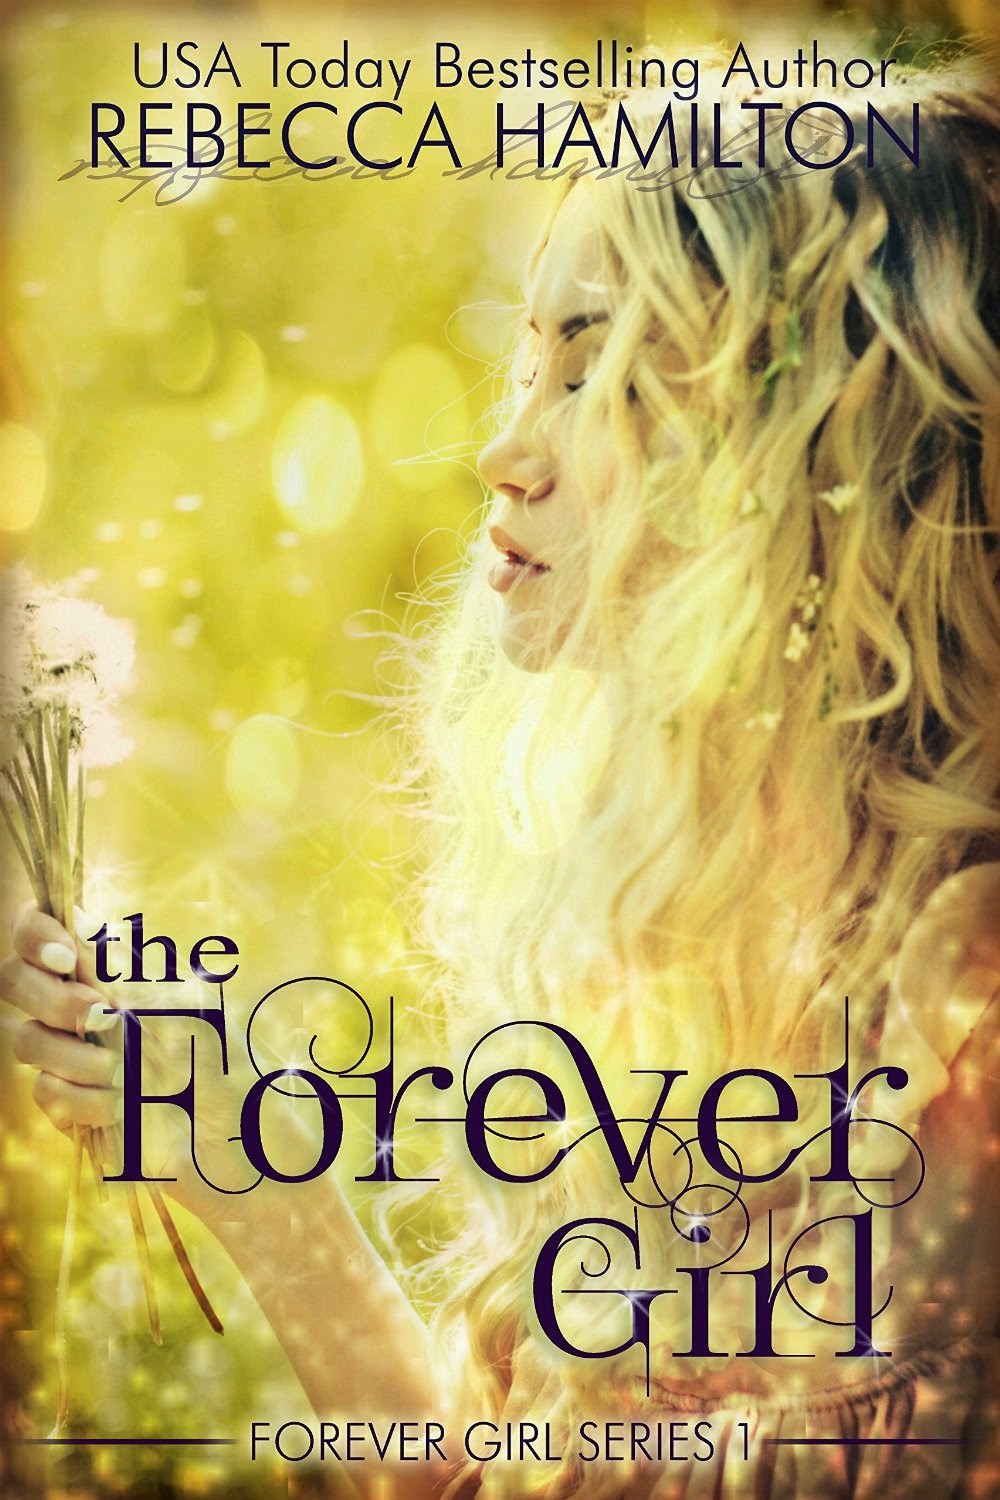 http://www.amazon.com/FOREVER-GIRL-Forever-Girl-Book-ebook/dp/B00729GQ0A/ref=tmm_kin_swatch_0?_encoding=UTF8&sr=1-3&qid=1420932823